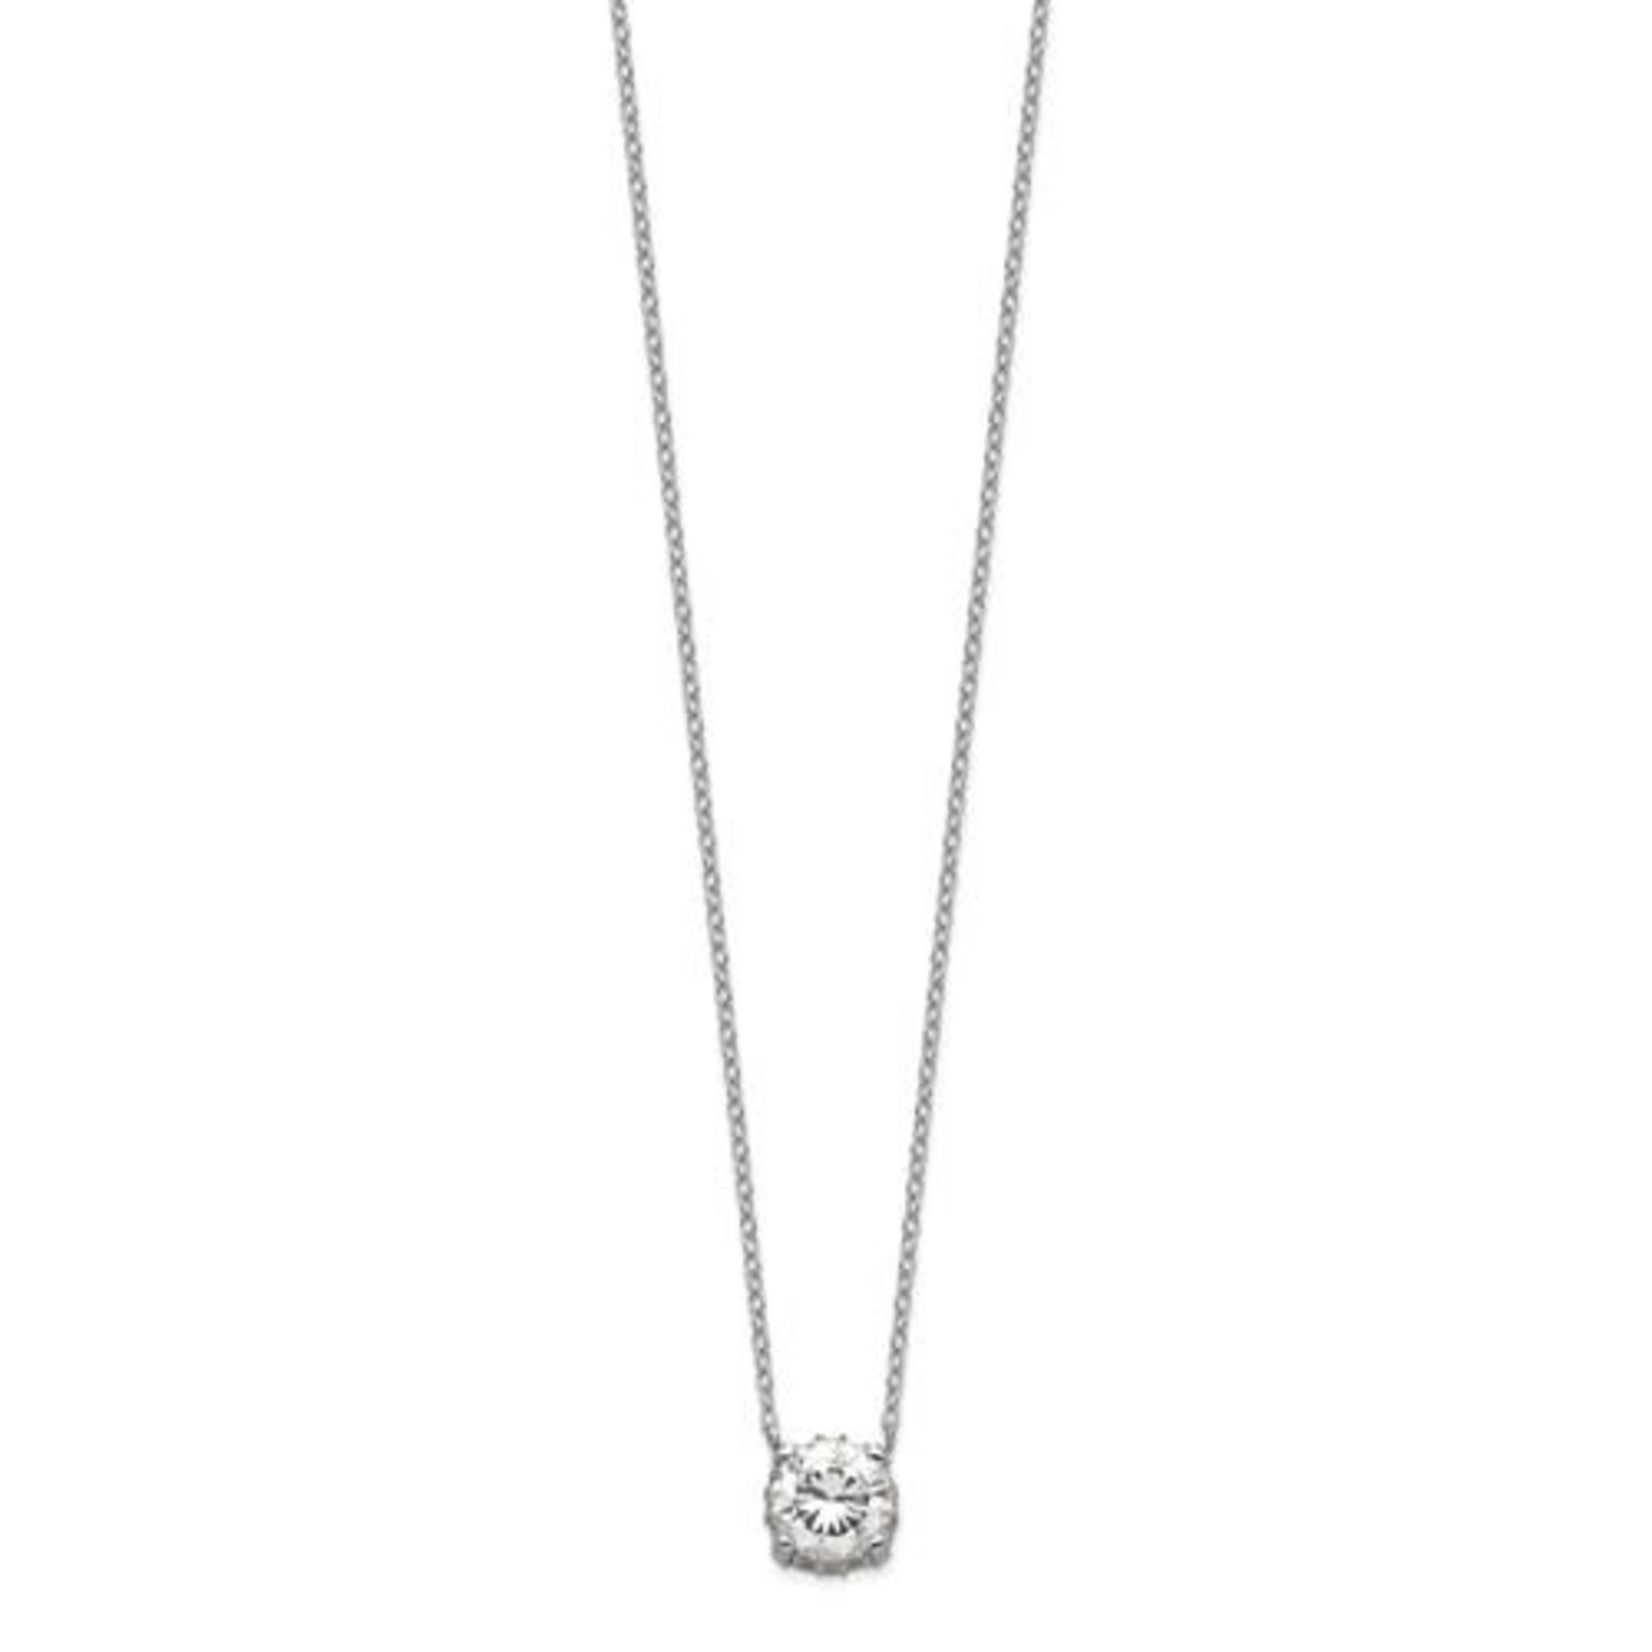 This Is Life Add Some Glitz Sterling Silver Necklace